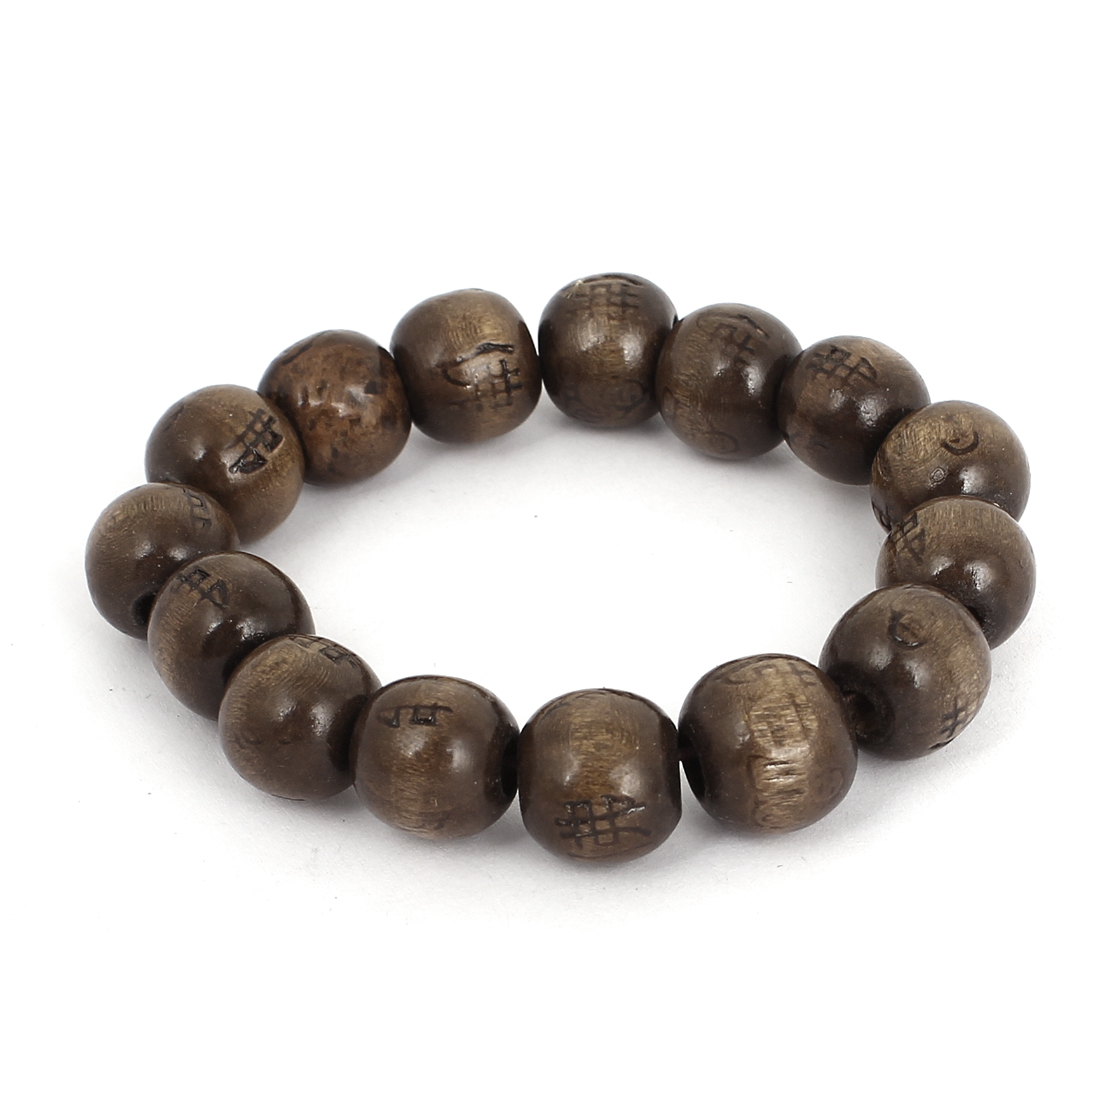 18cm Girth Brown Wood Chinese Character Print Round Beads Elastic Buddha Bracelet Bangle Stretch Band